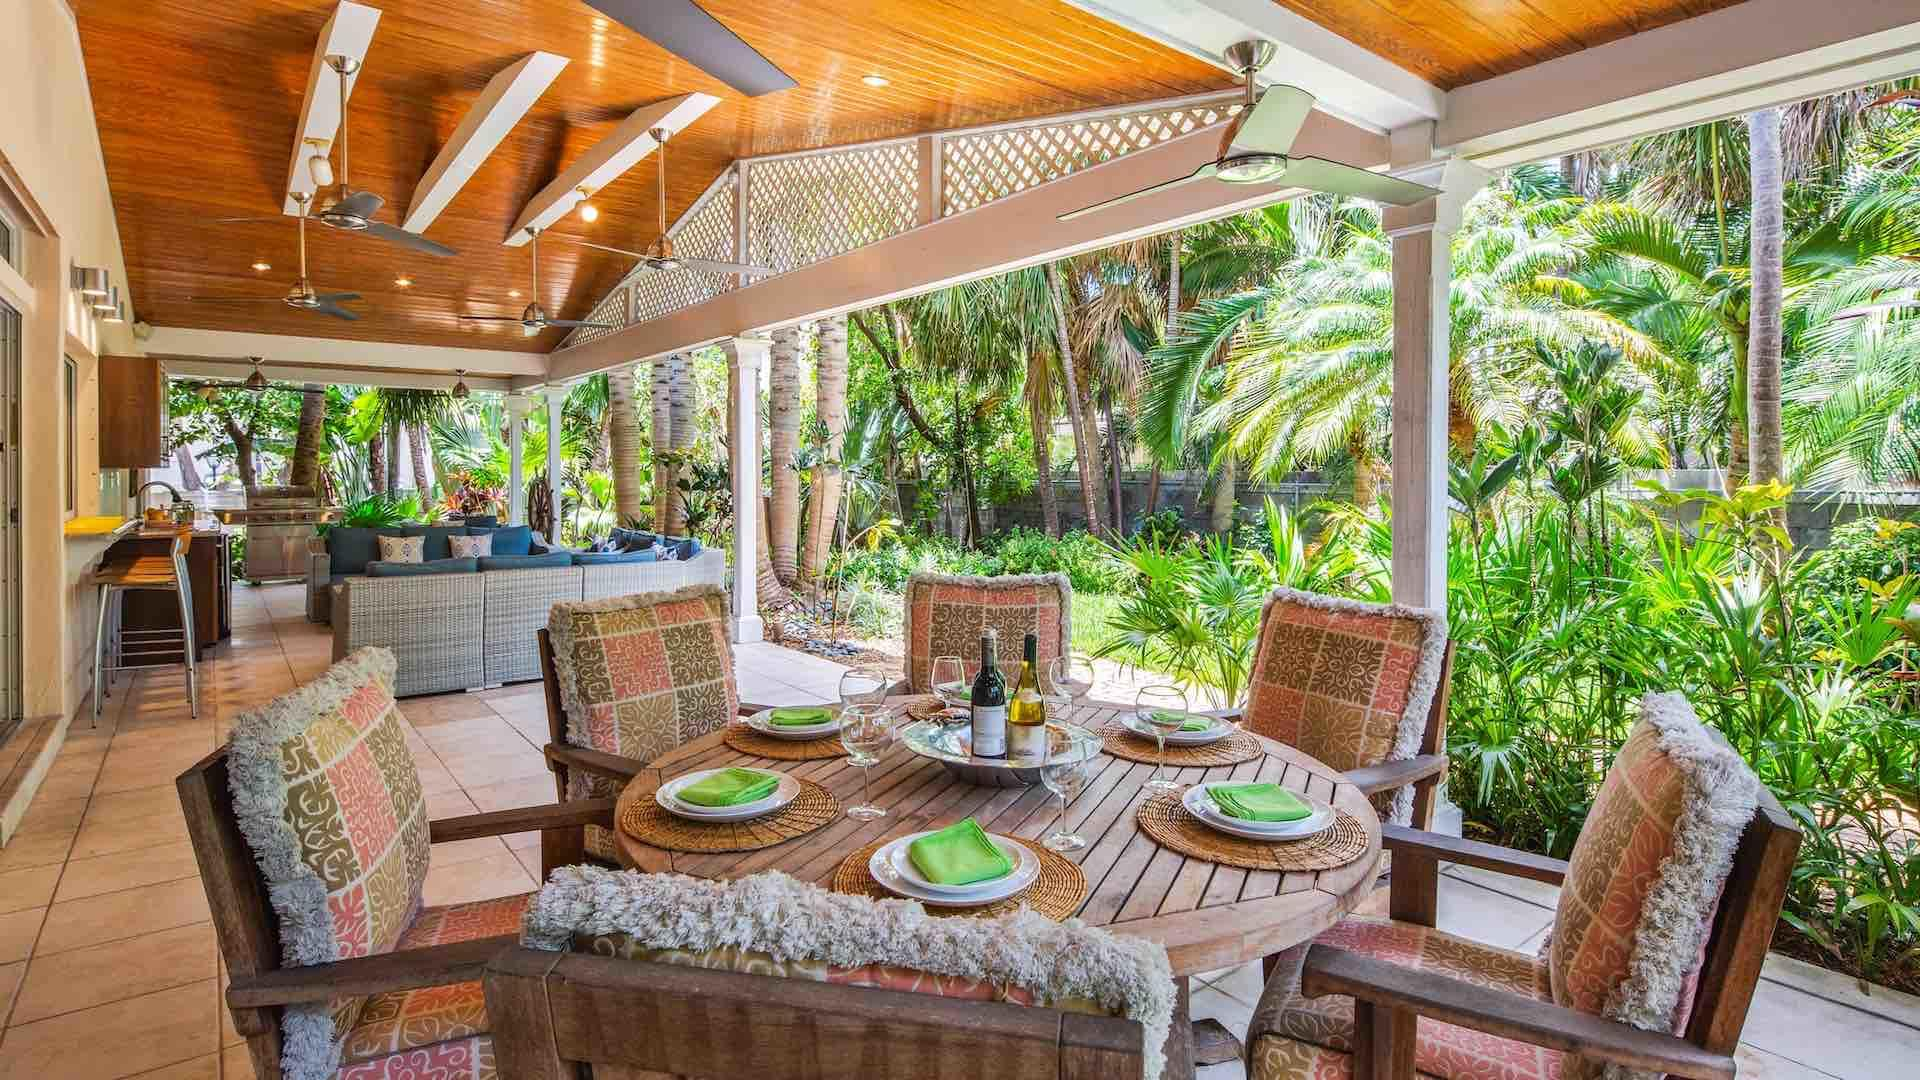 The back porch also has a covered outdoor dining table that seats up to six...